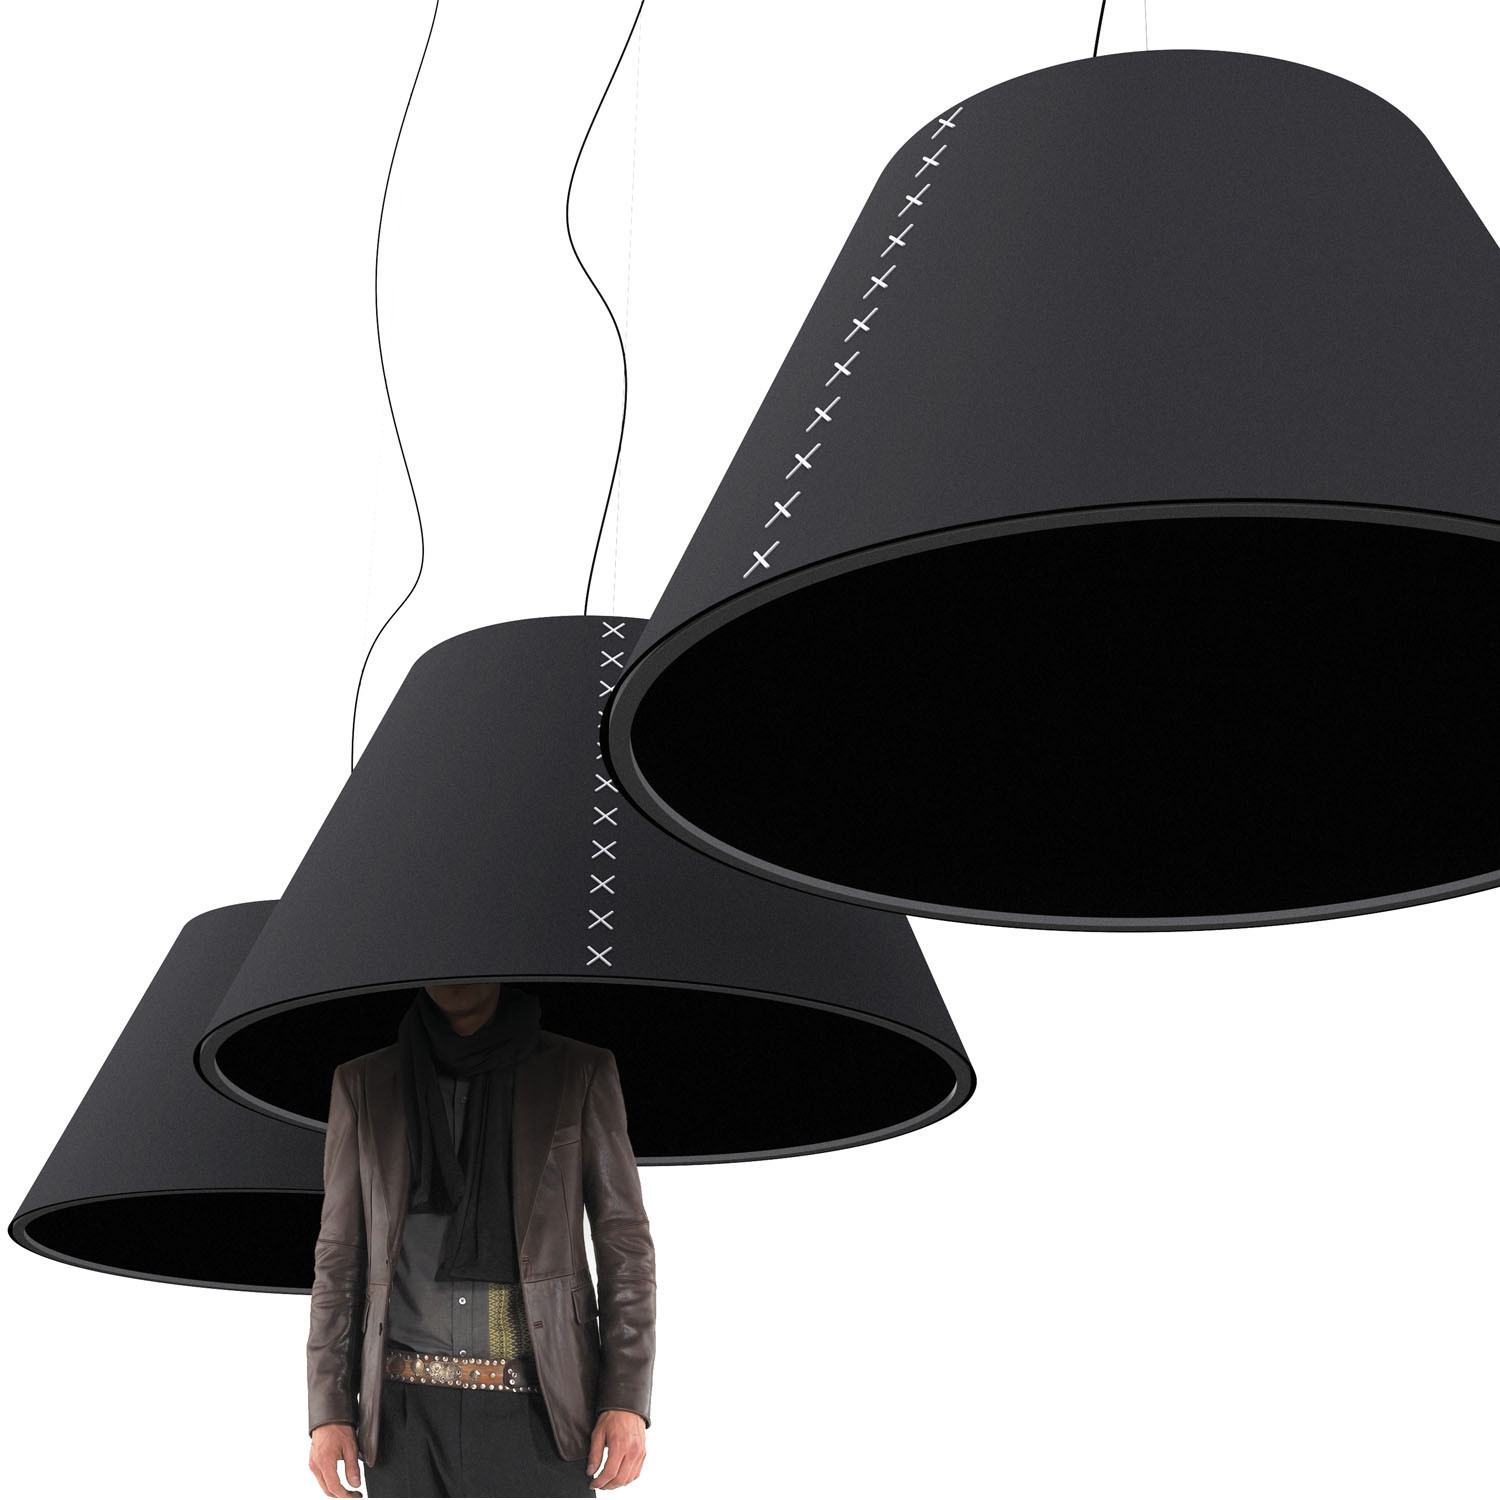 BuzziShade Acoustic Lamp